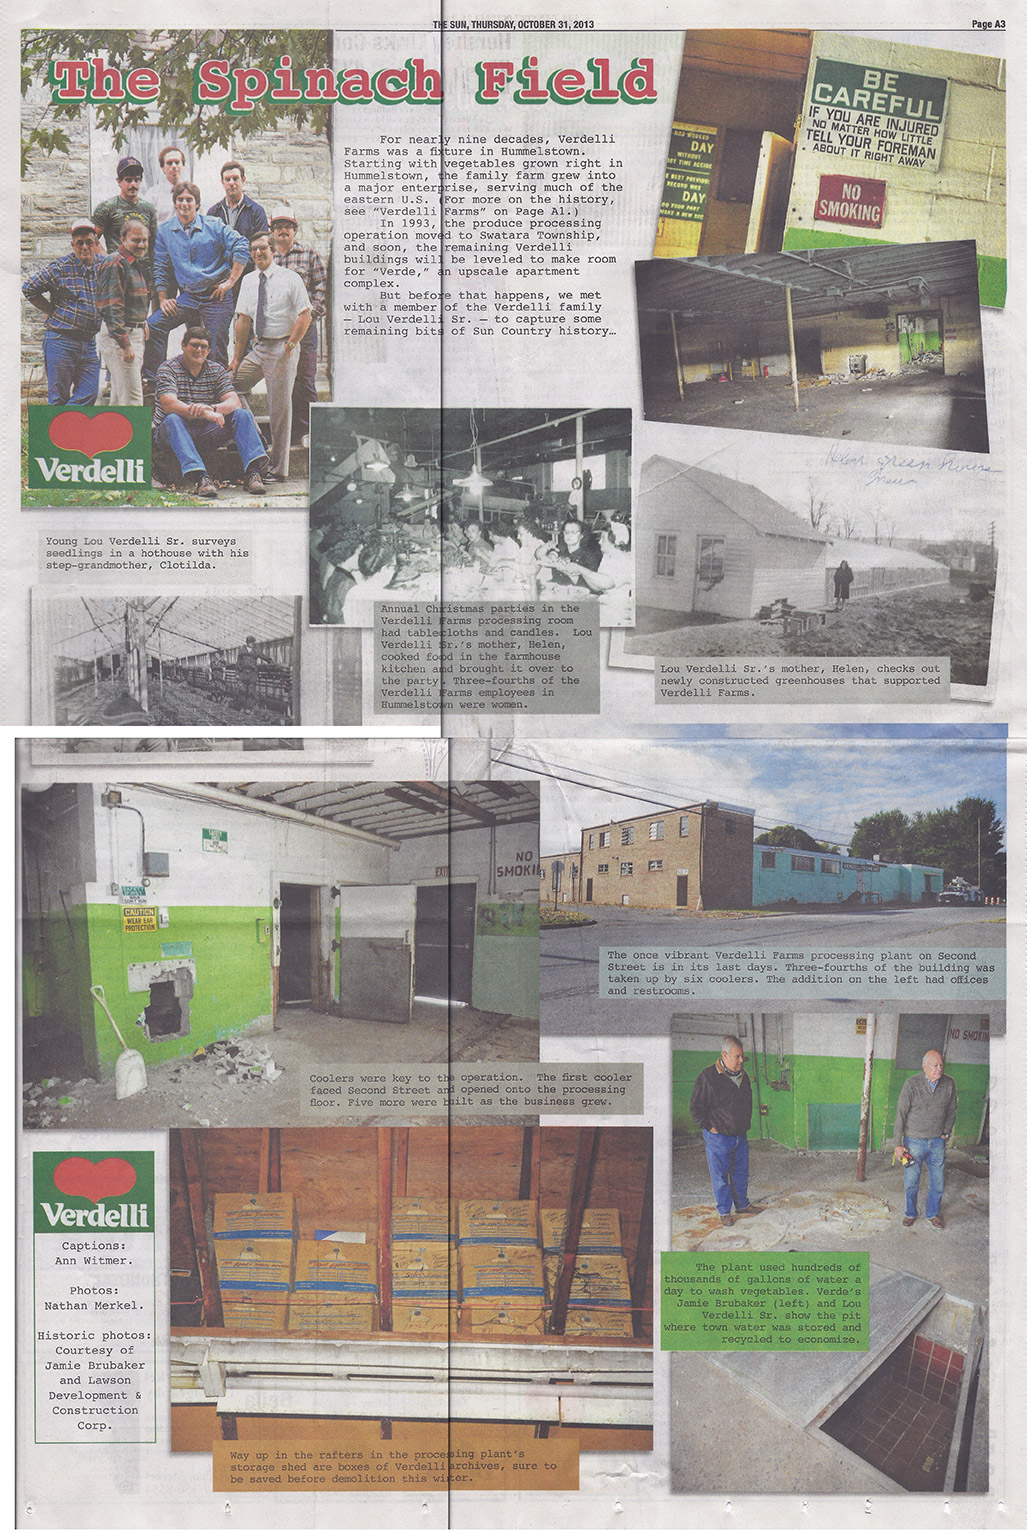 Images of Verdelli Farms in a newspaper clipping